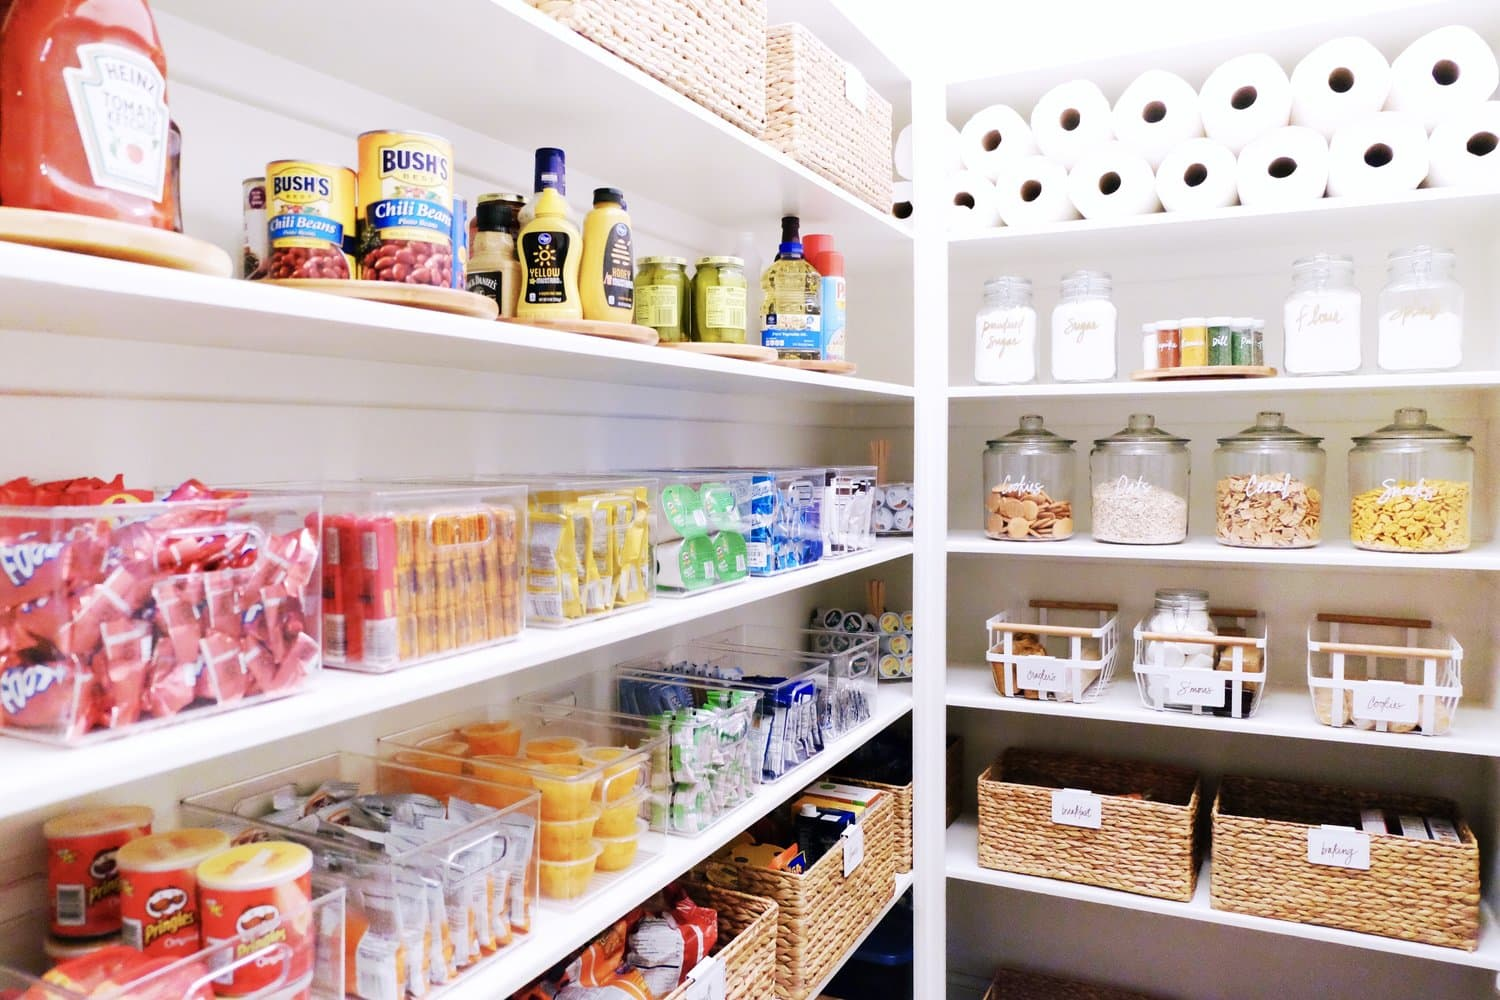 The 10 Things Pro Home Organizers Can't Live Without